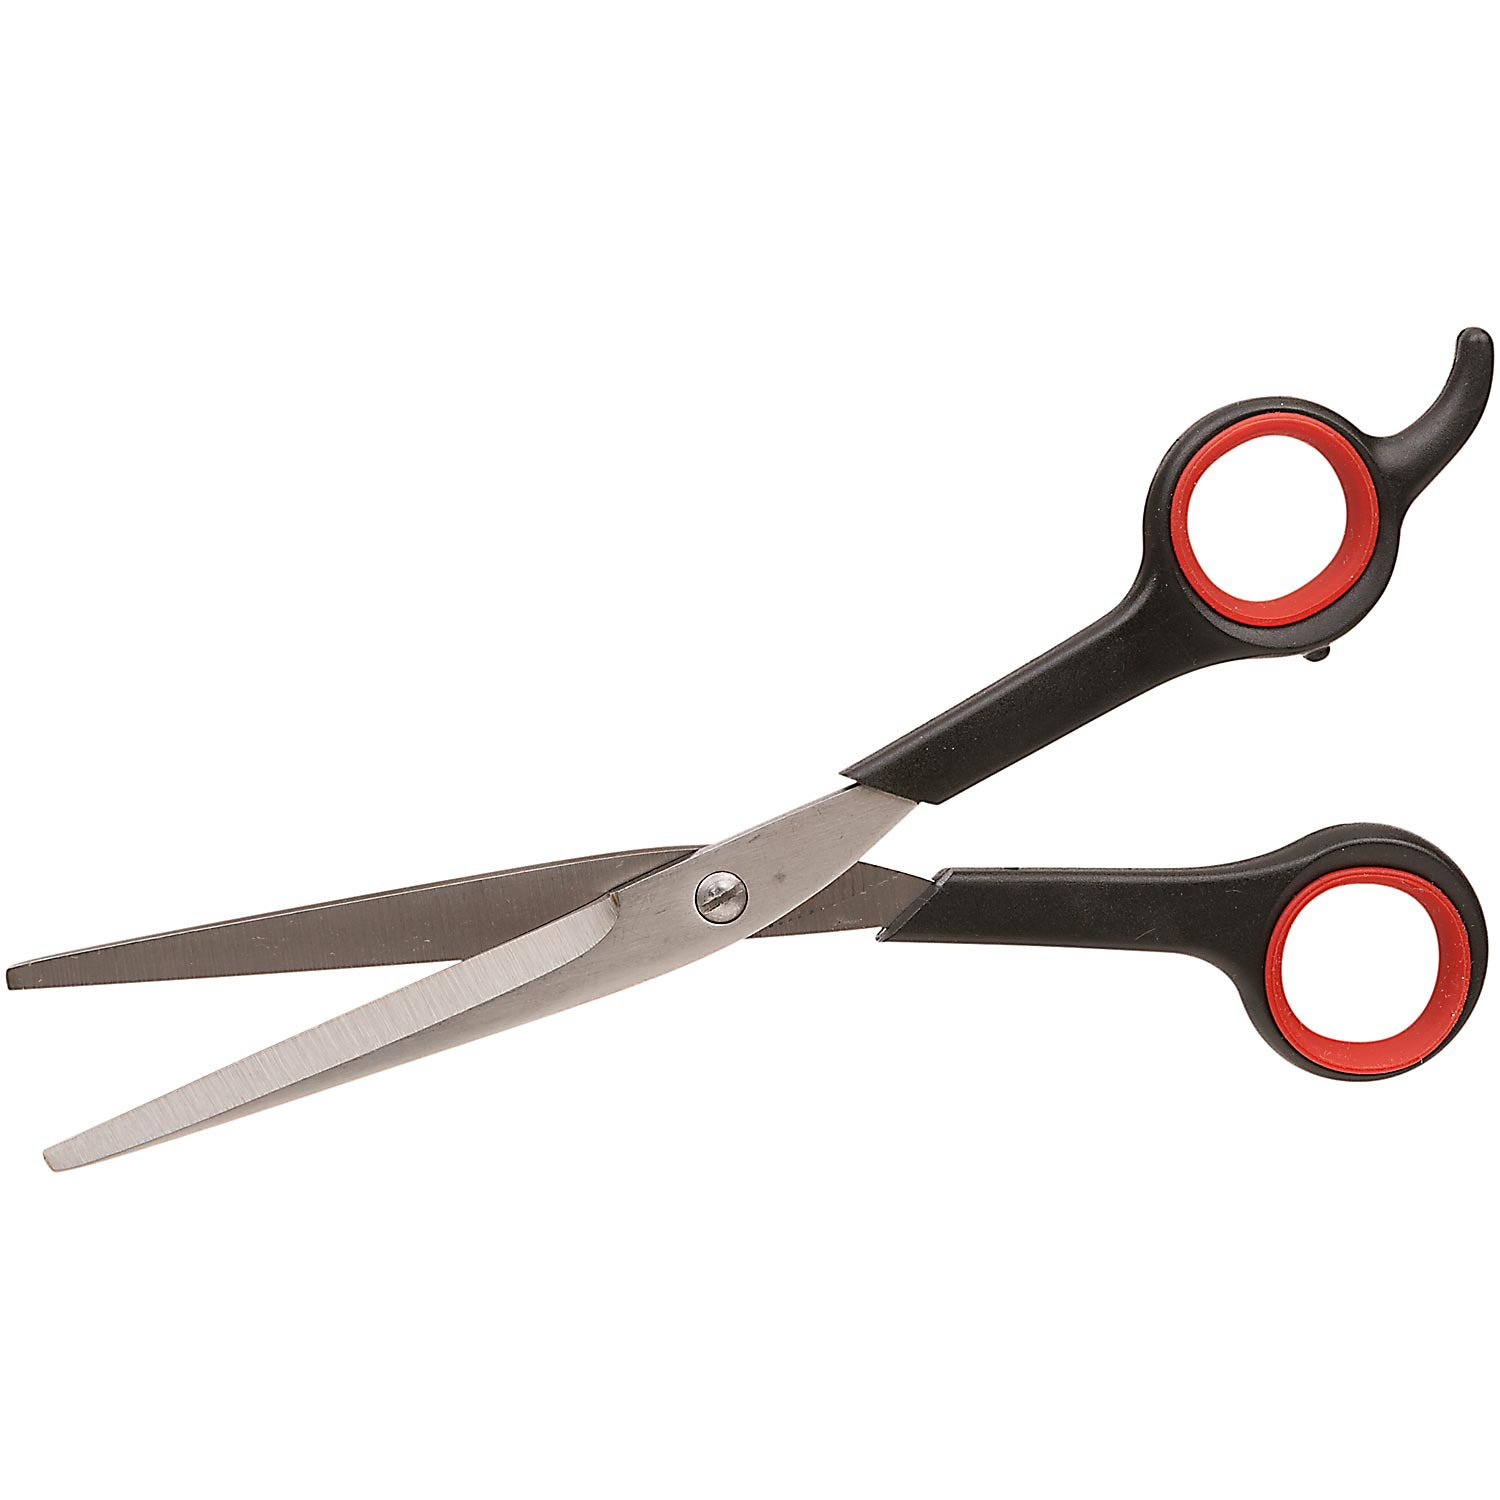 Four paws magic coat dog grooming shears petco for 4 paws dog salon